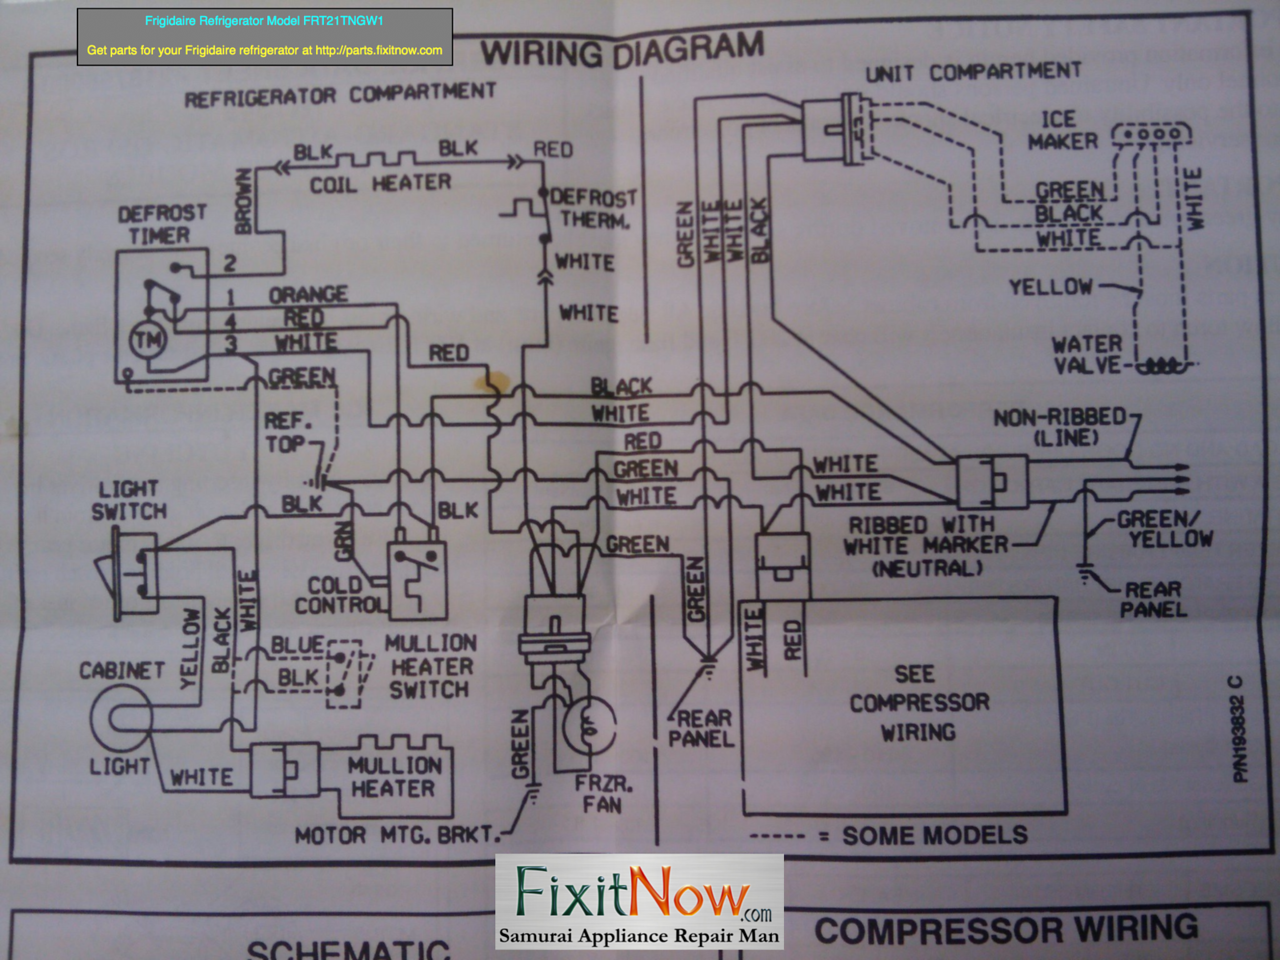 4 Wire Range Wiring Diagram - Wiring Schematics Range Wiring Diagrams on